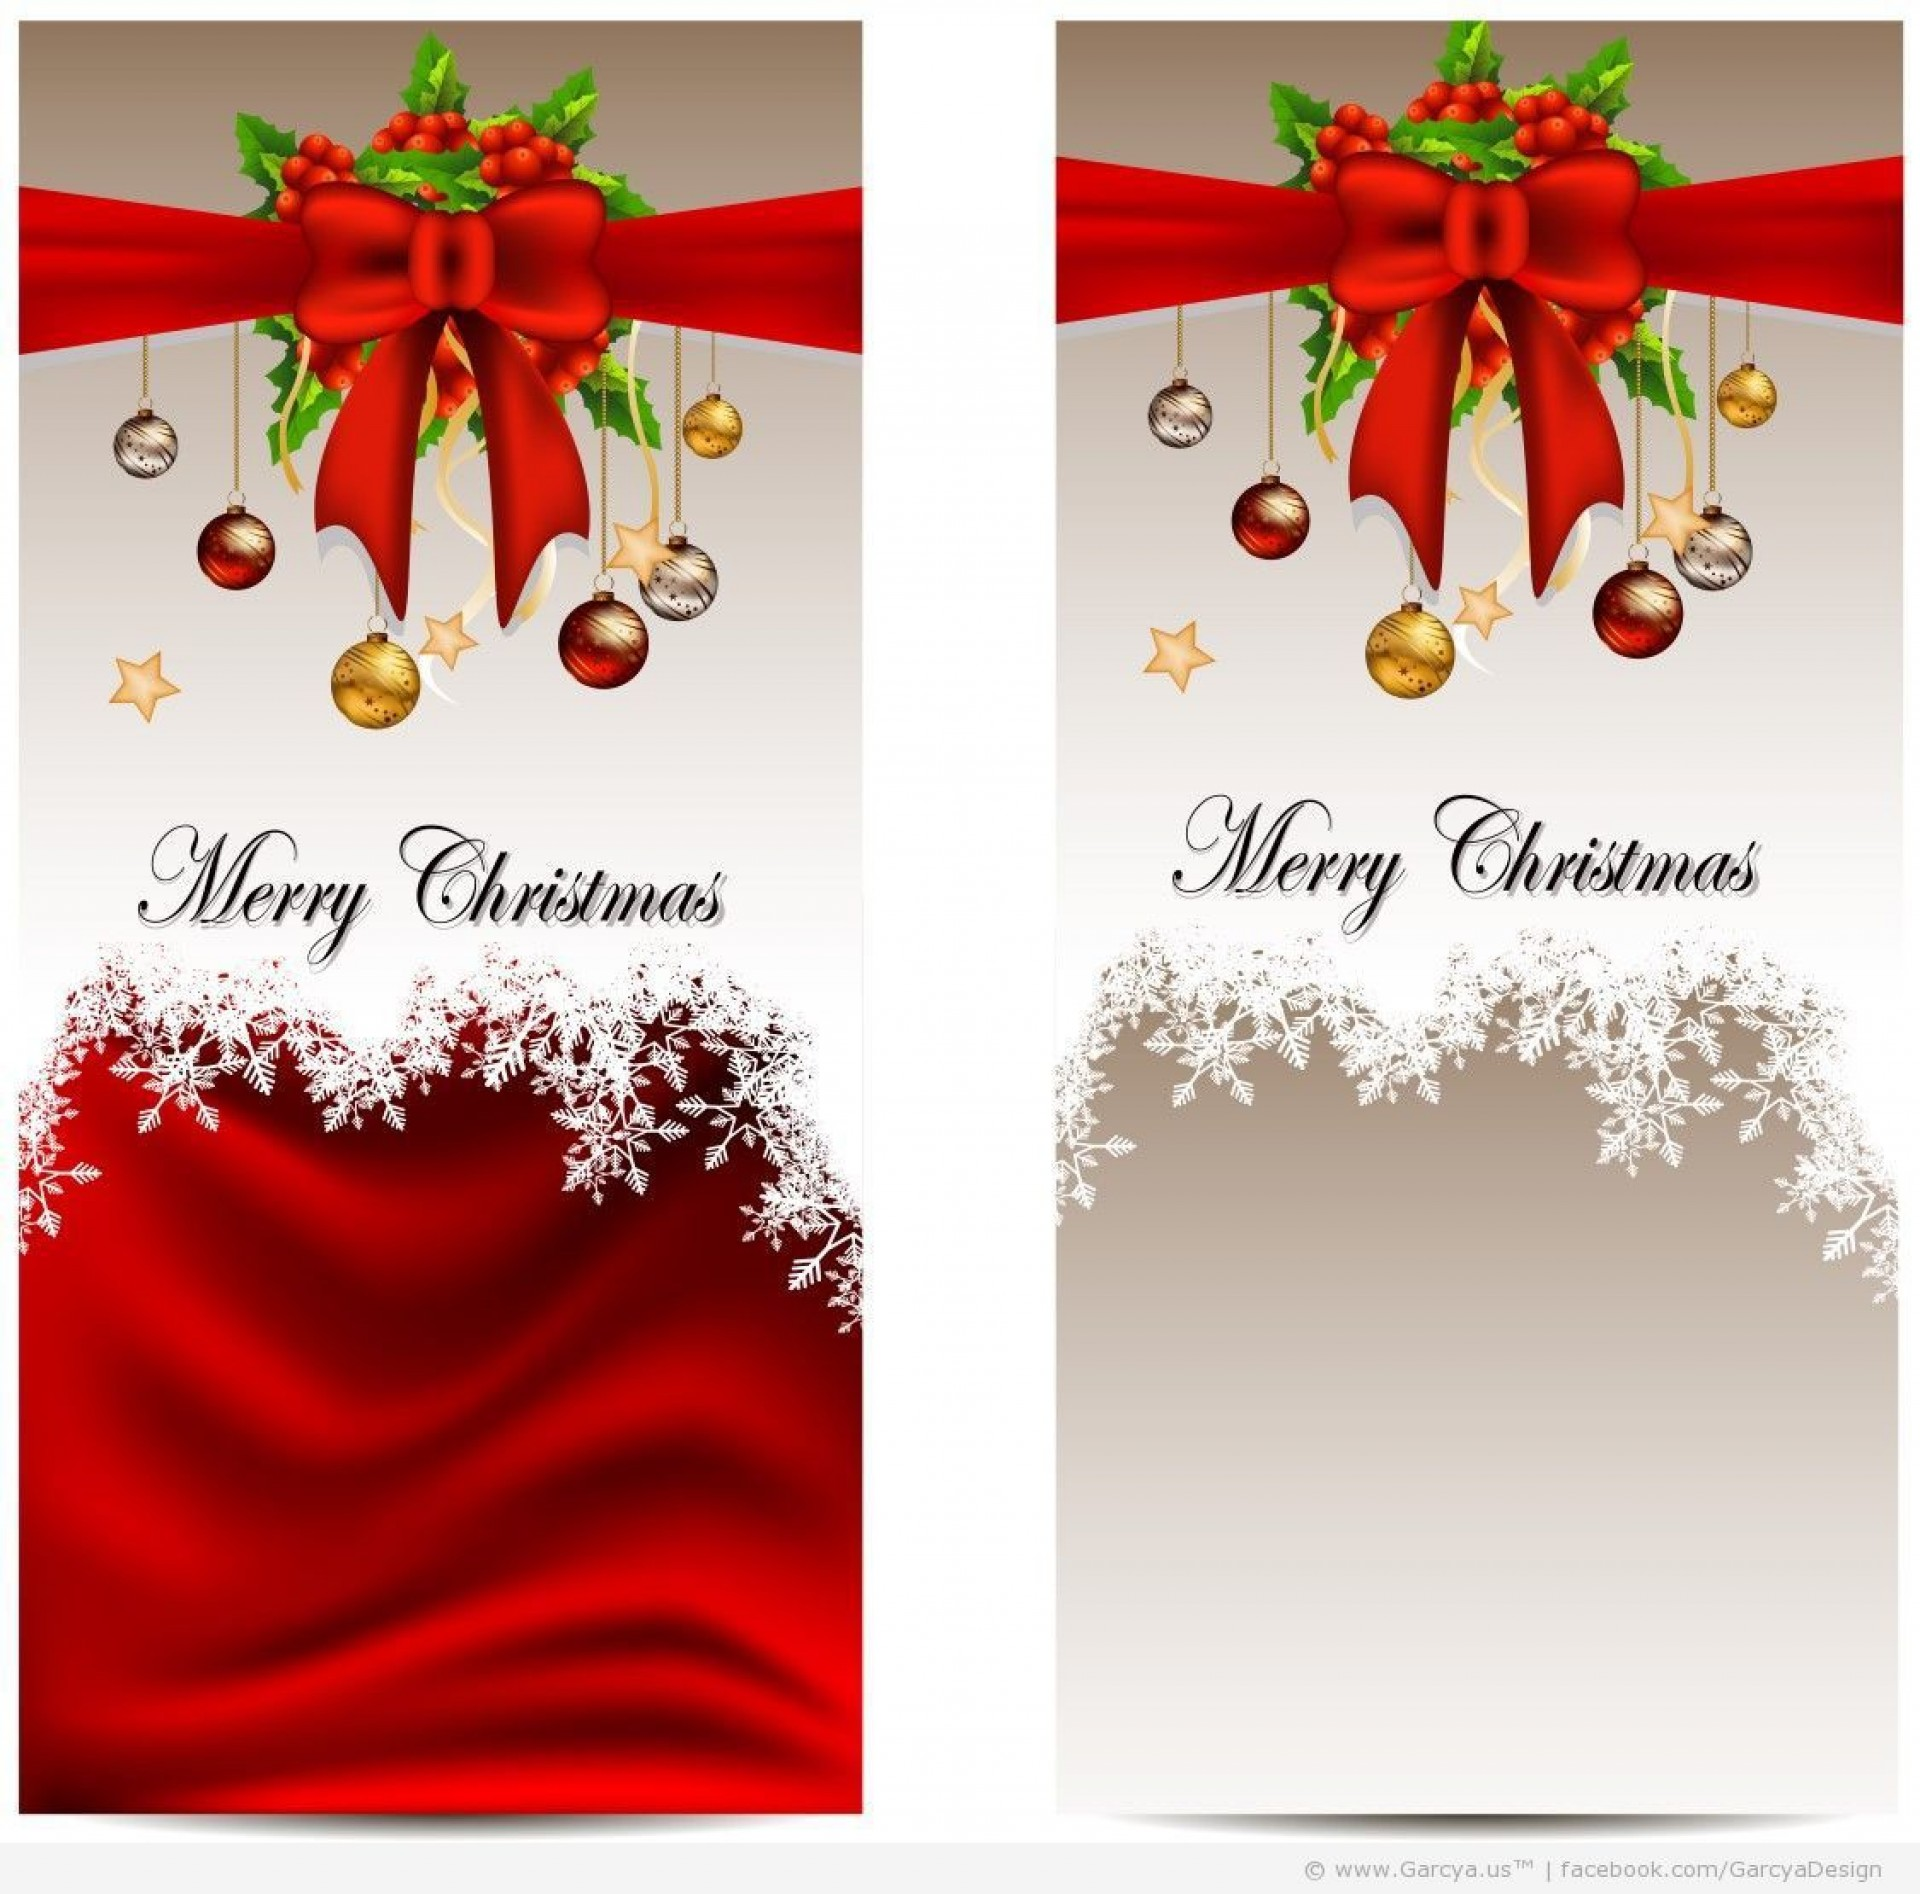 001 Incredible Christma Card Template Free Download High Definition  Photo Xma Place1920